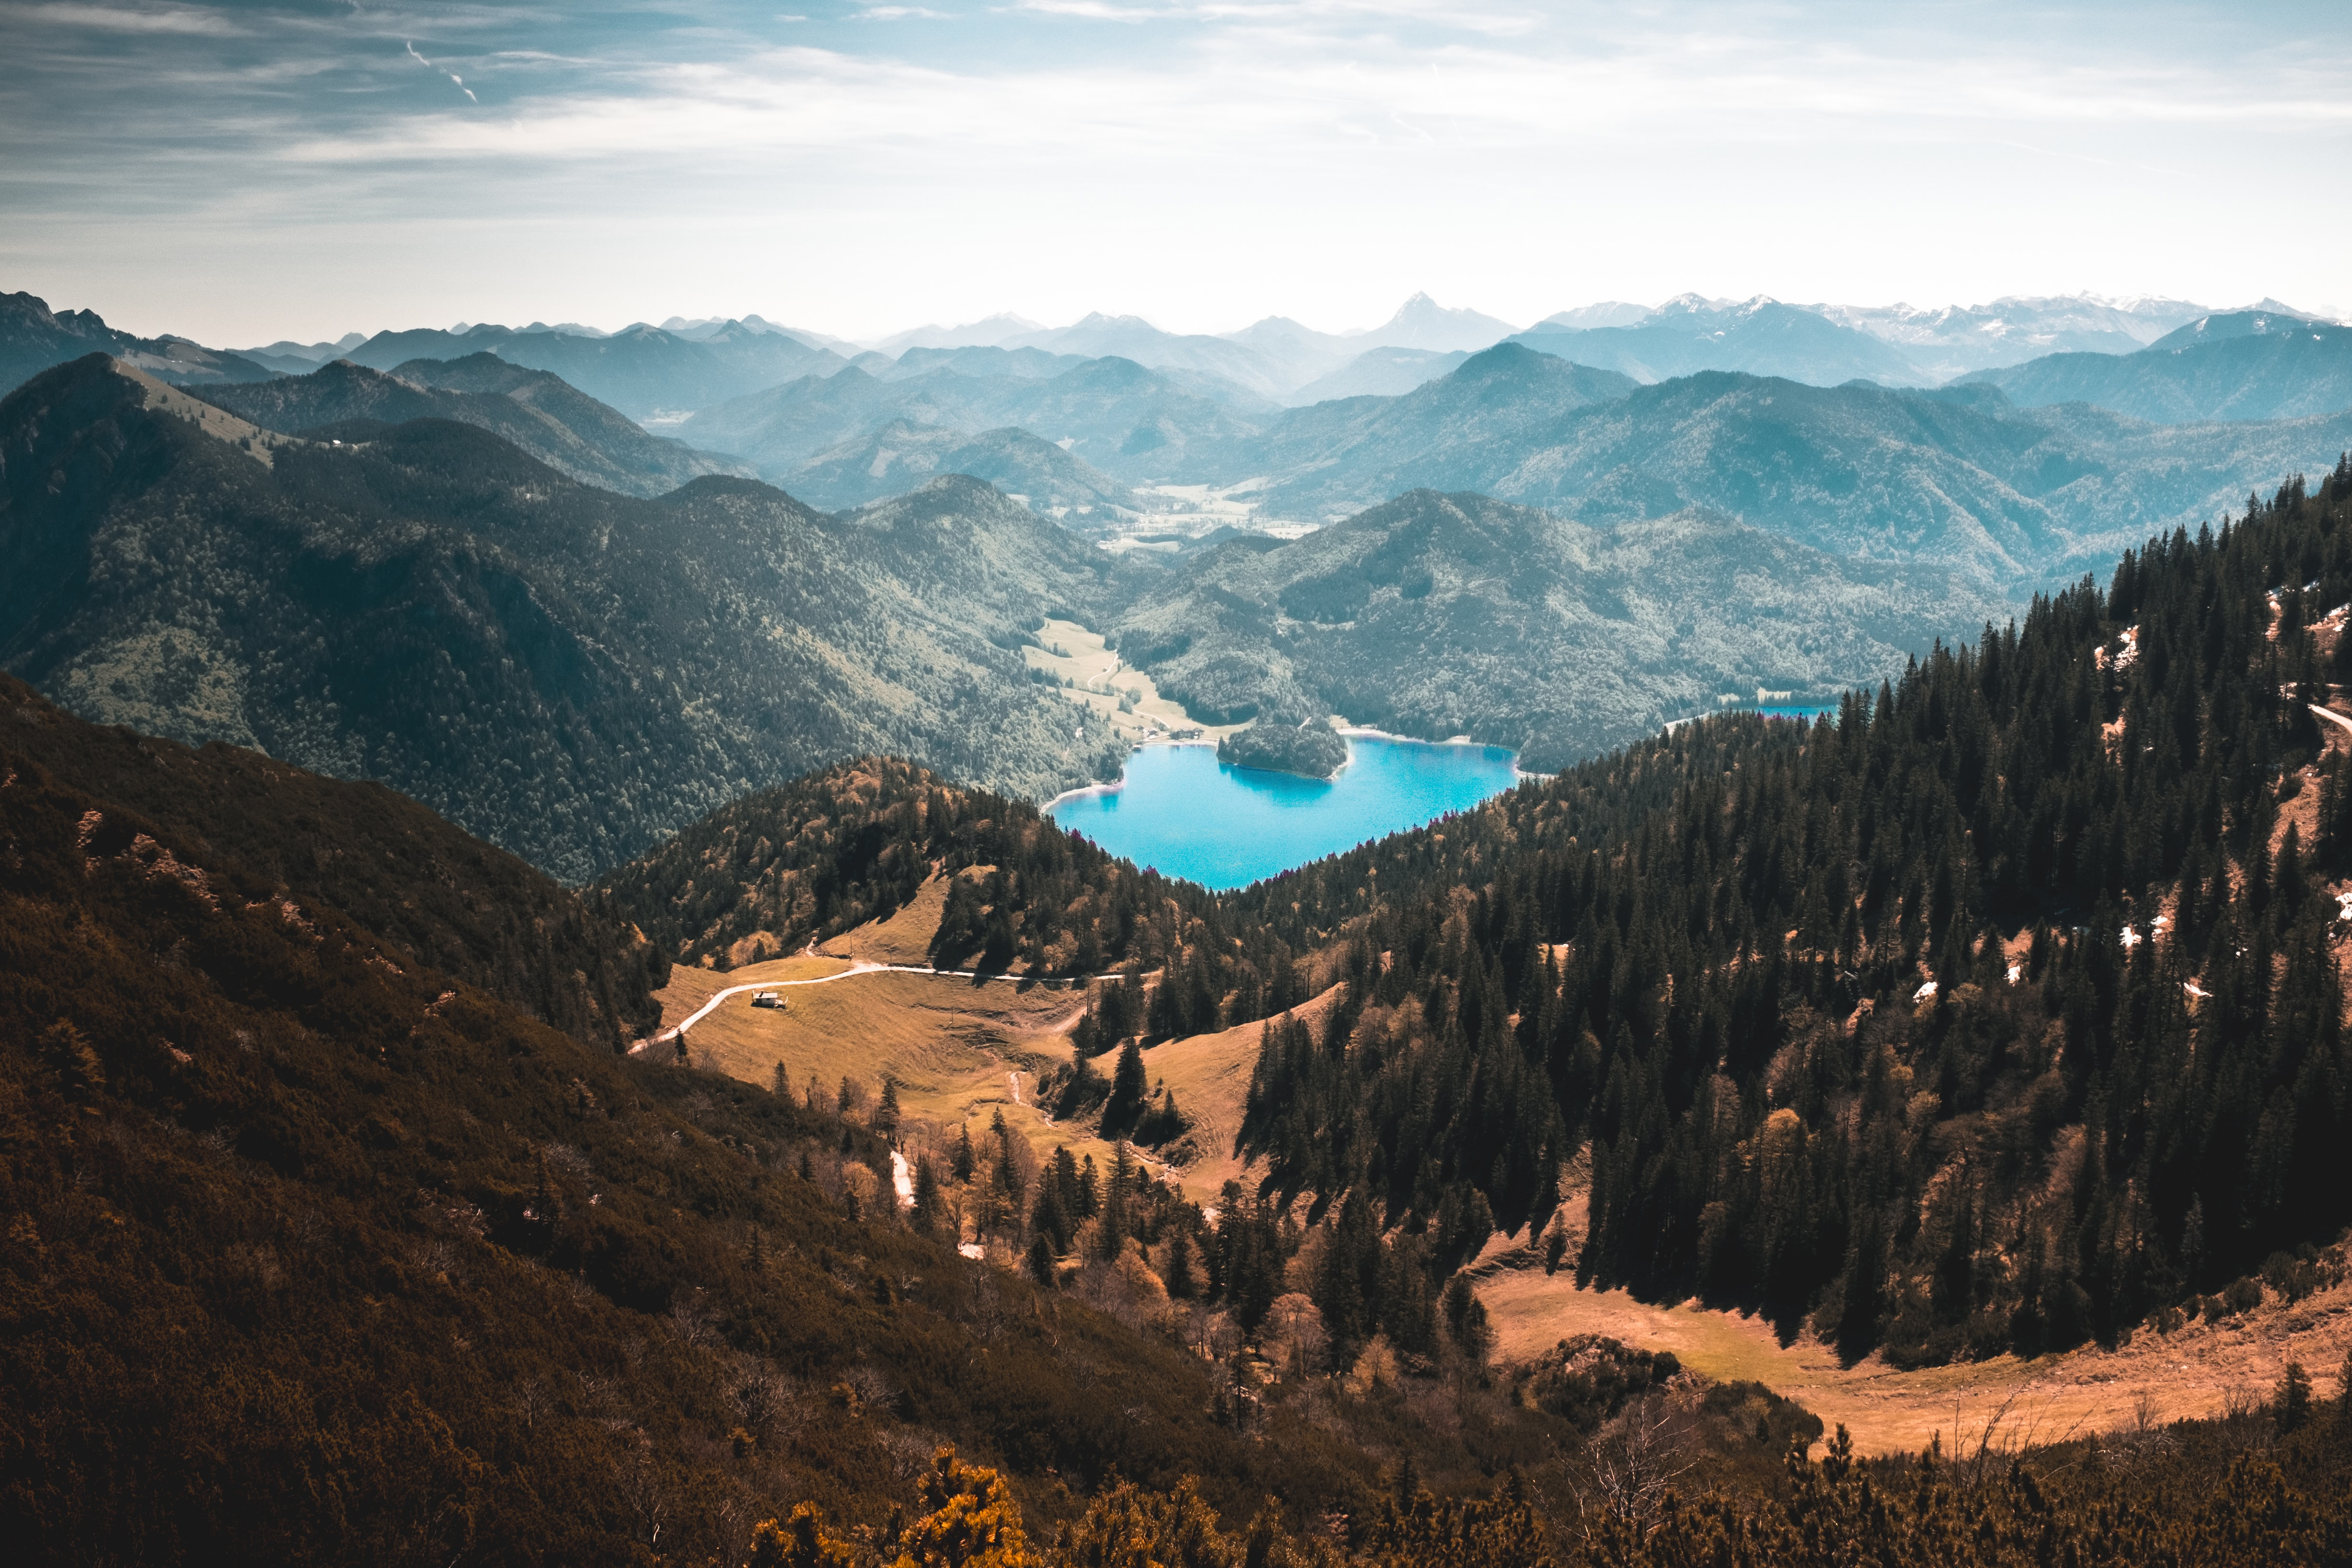 scenery of mountain with lake